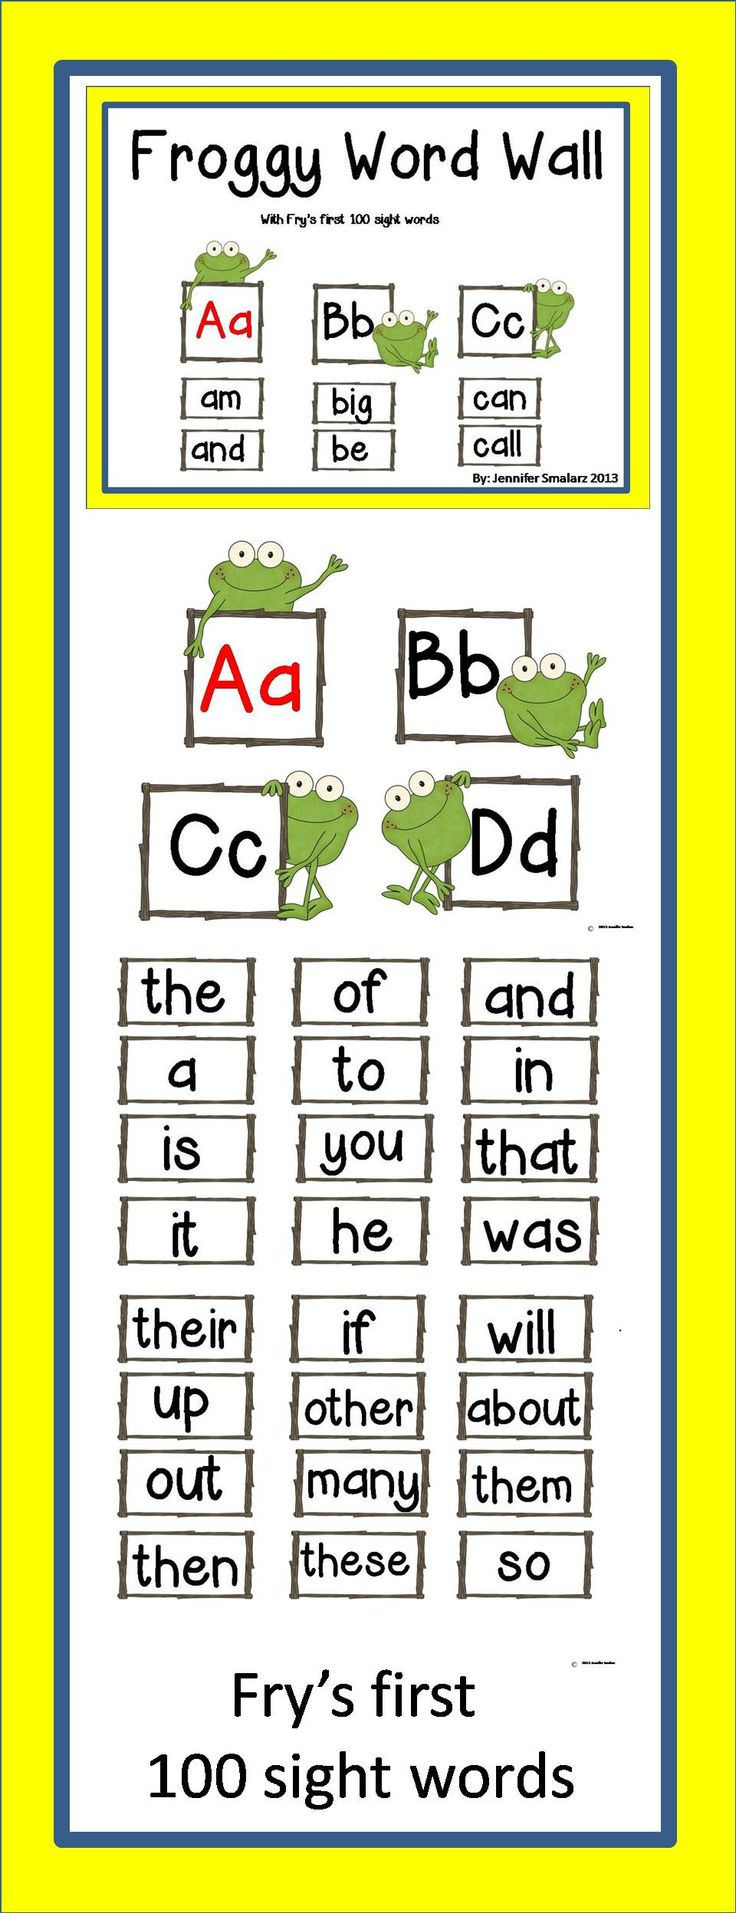 Worksheet 1st 100 Sight Words 78 best images about sight words on pinterest fry word wall with froggy includes alphabet frys first 100 blank cards to add your own words